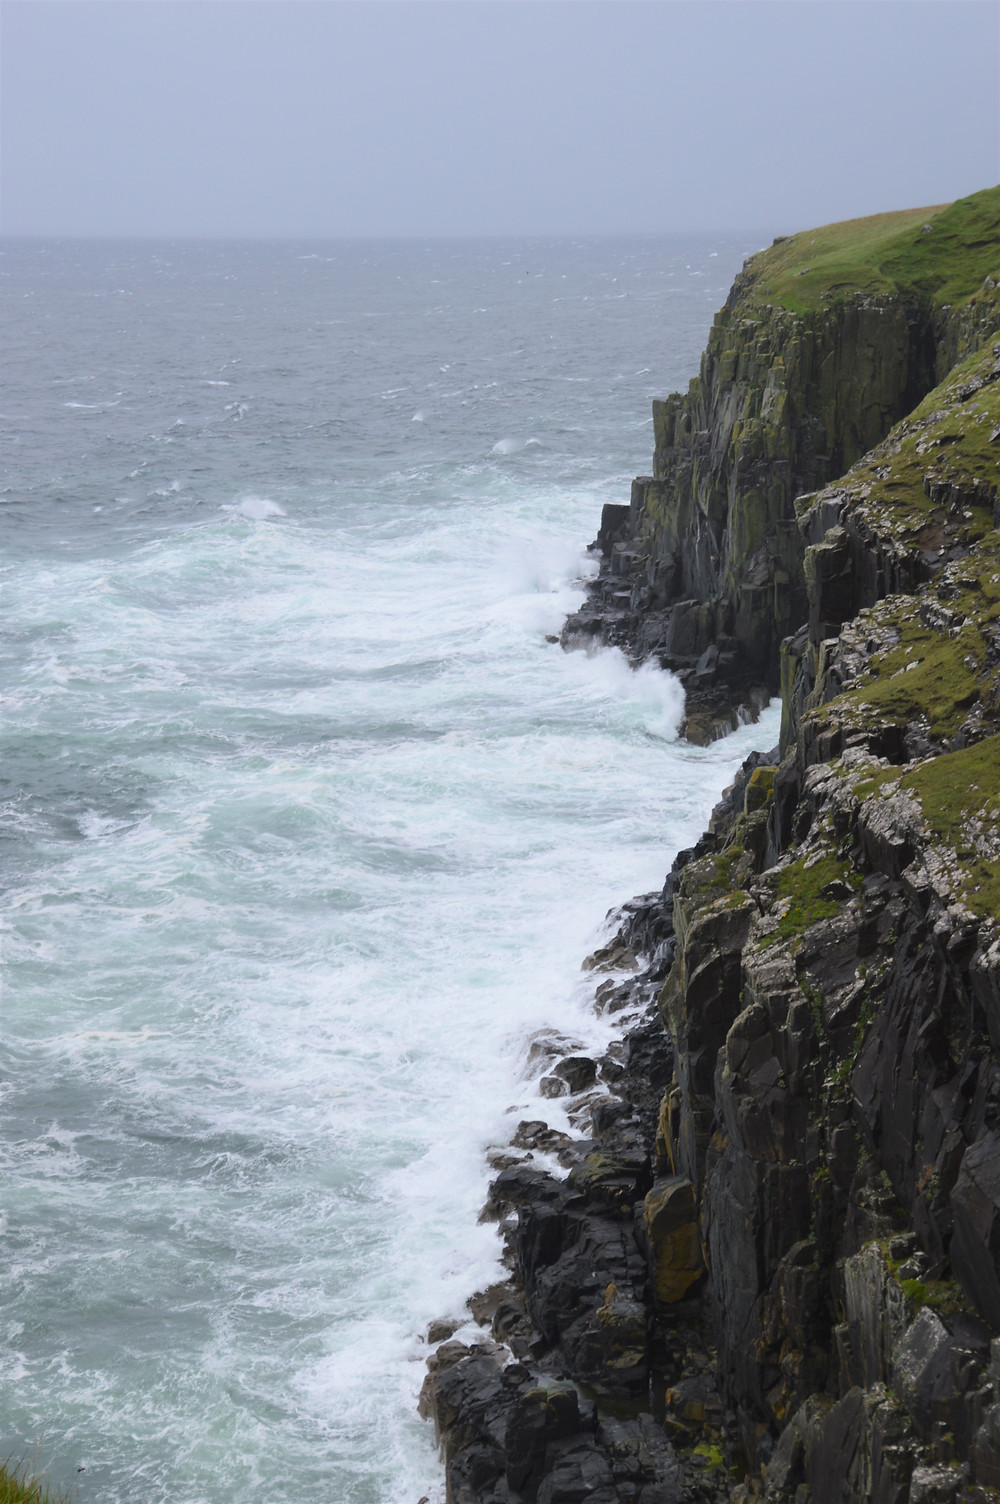 Storms battering the sea cliff of Neist Point on the Isle of Skye